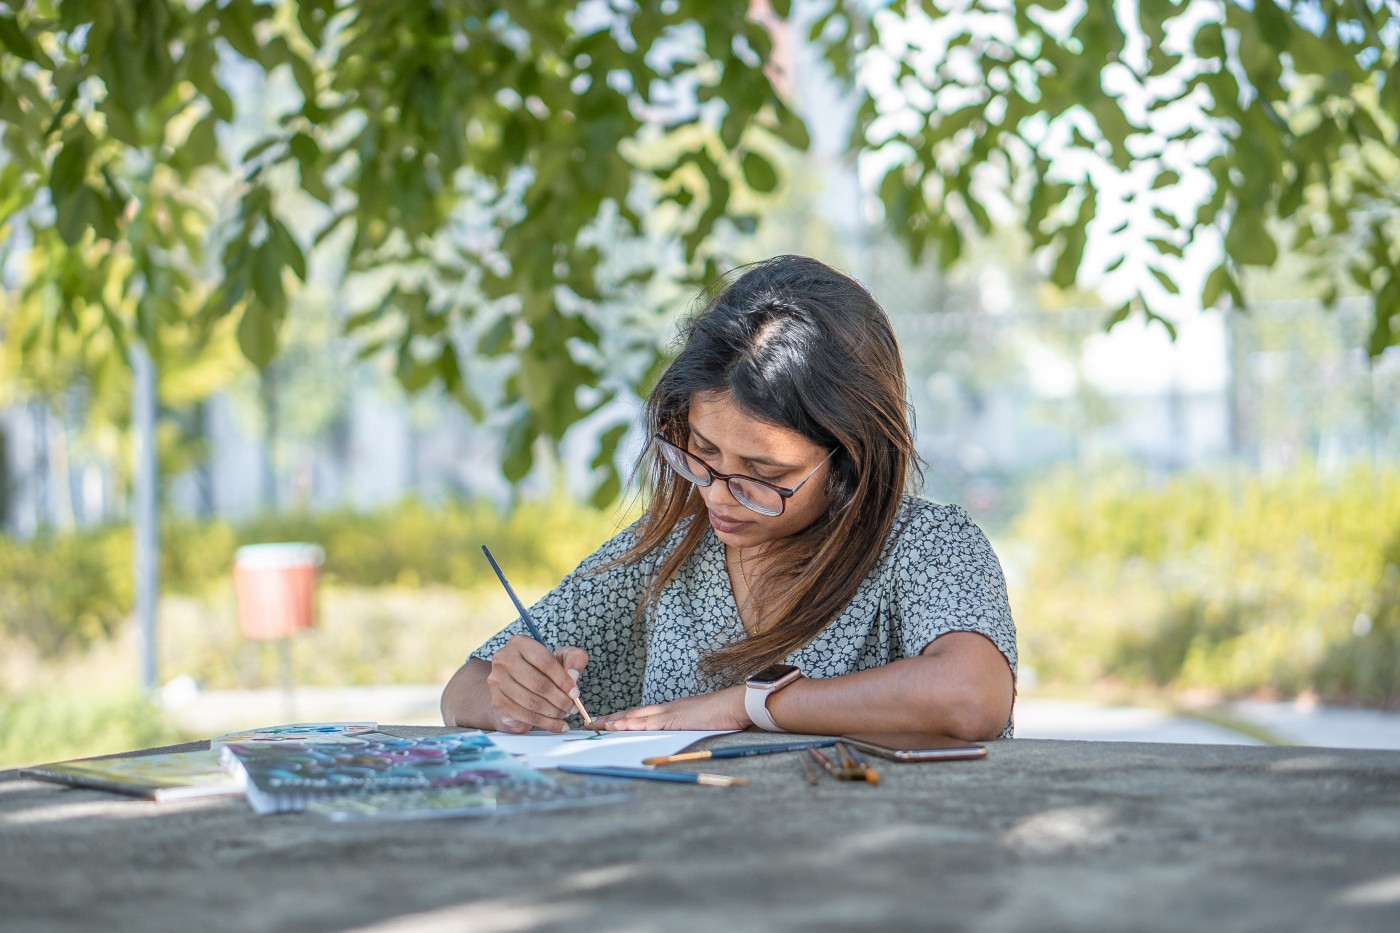 A girl with spectacles, sitting and writing on a table under the shade of a tree.